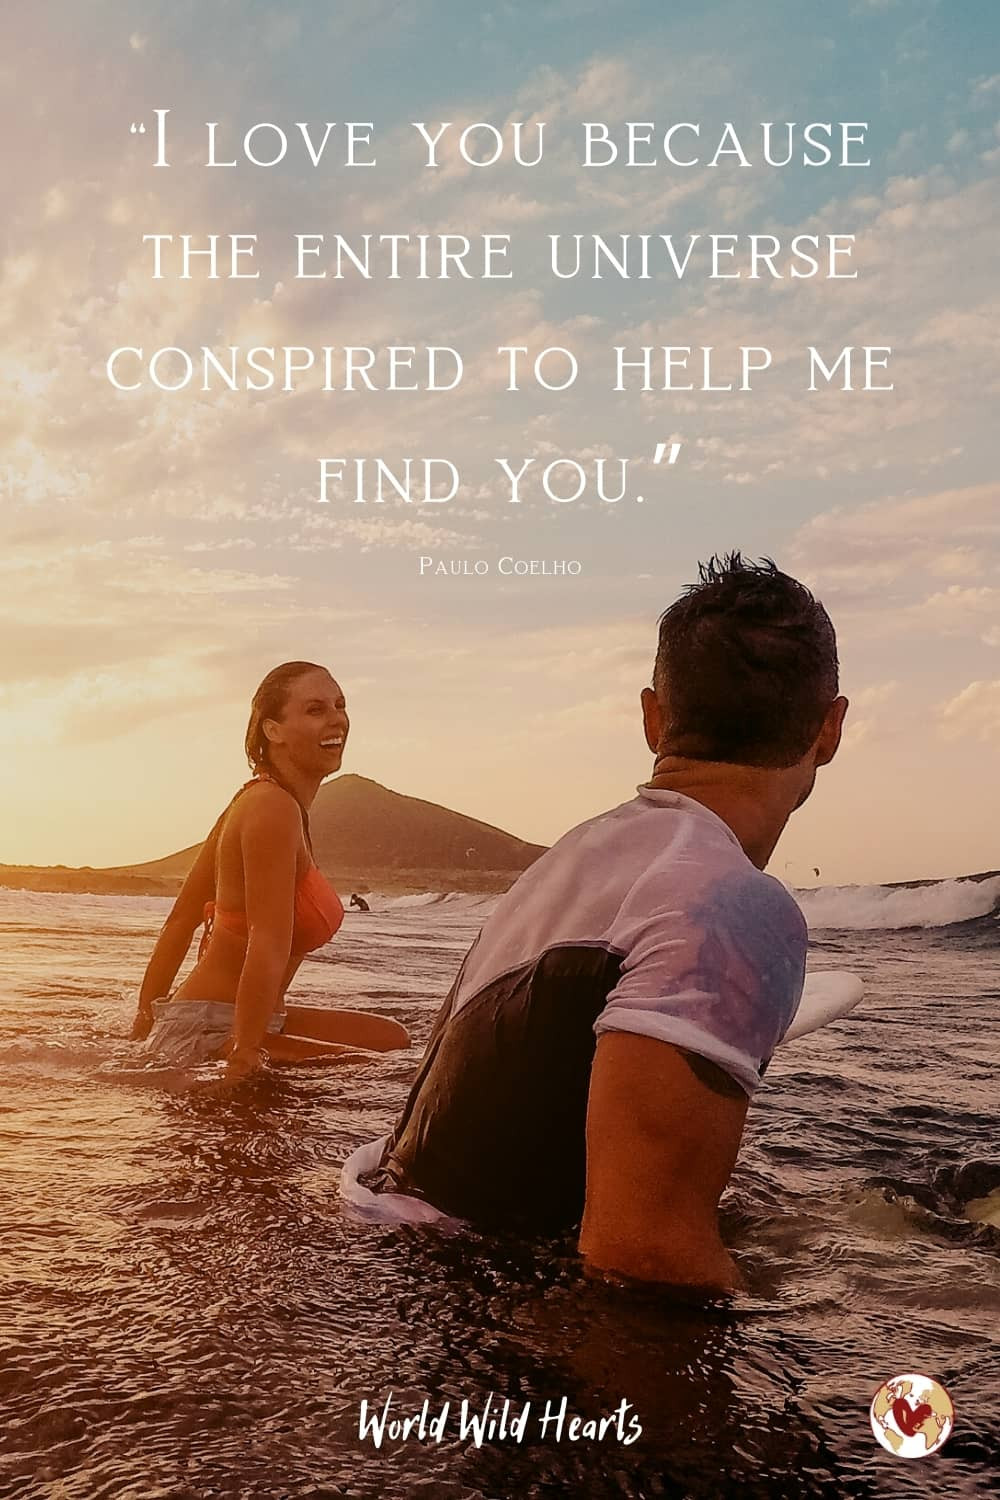 Couples fate travel quote